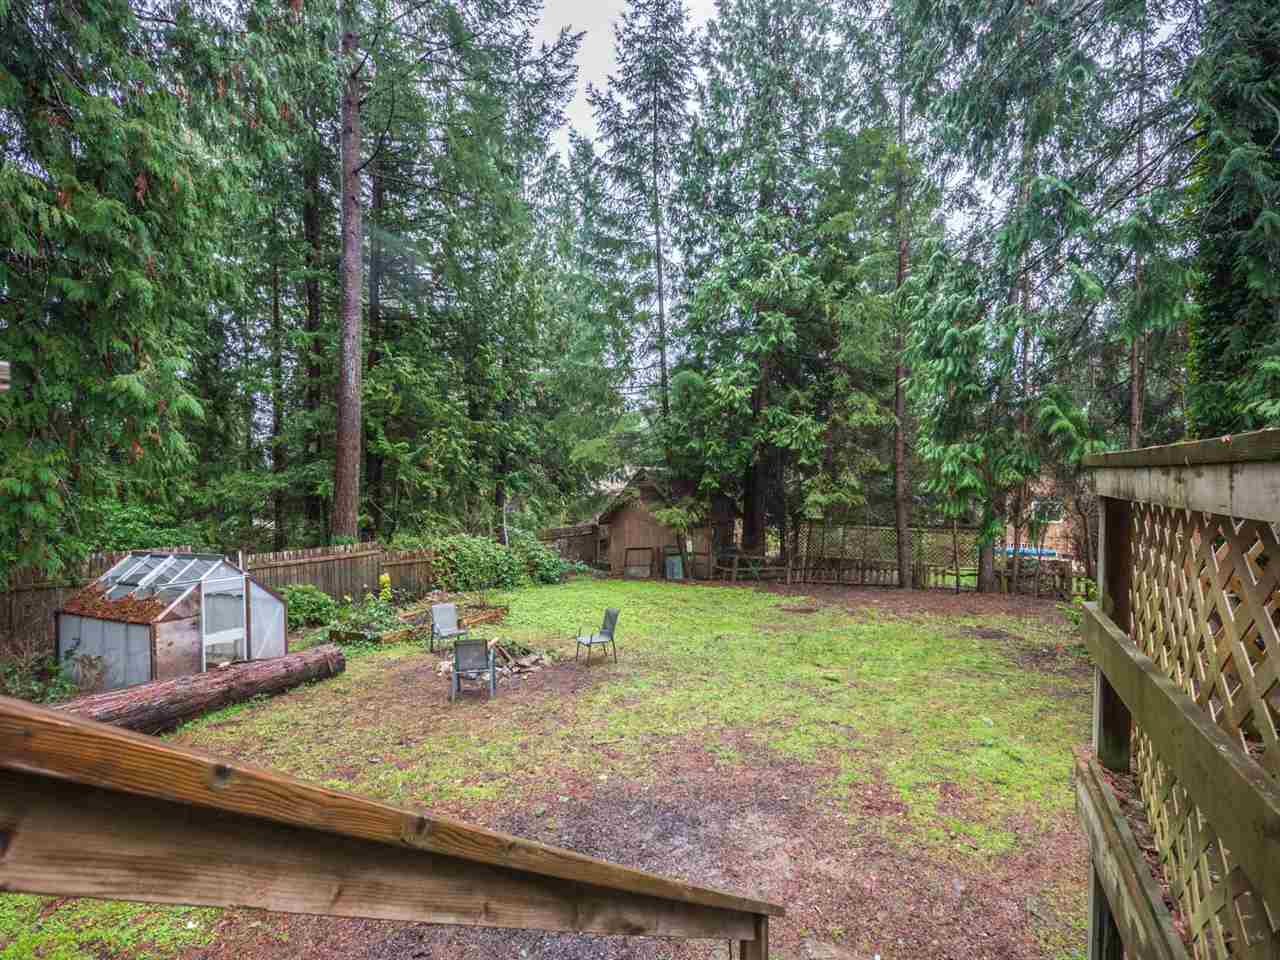 Photo 14: Photos: 5592 WAKEFIELD Road in Sechelt: Sechelt District Manufactured Home for sale (Sunshine Coast)  : MLS® # R2230720